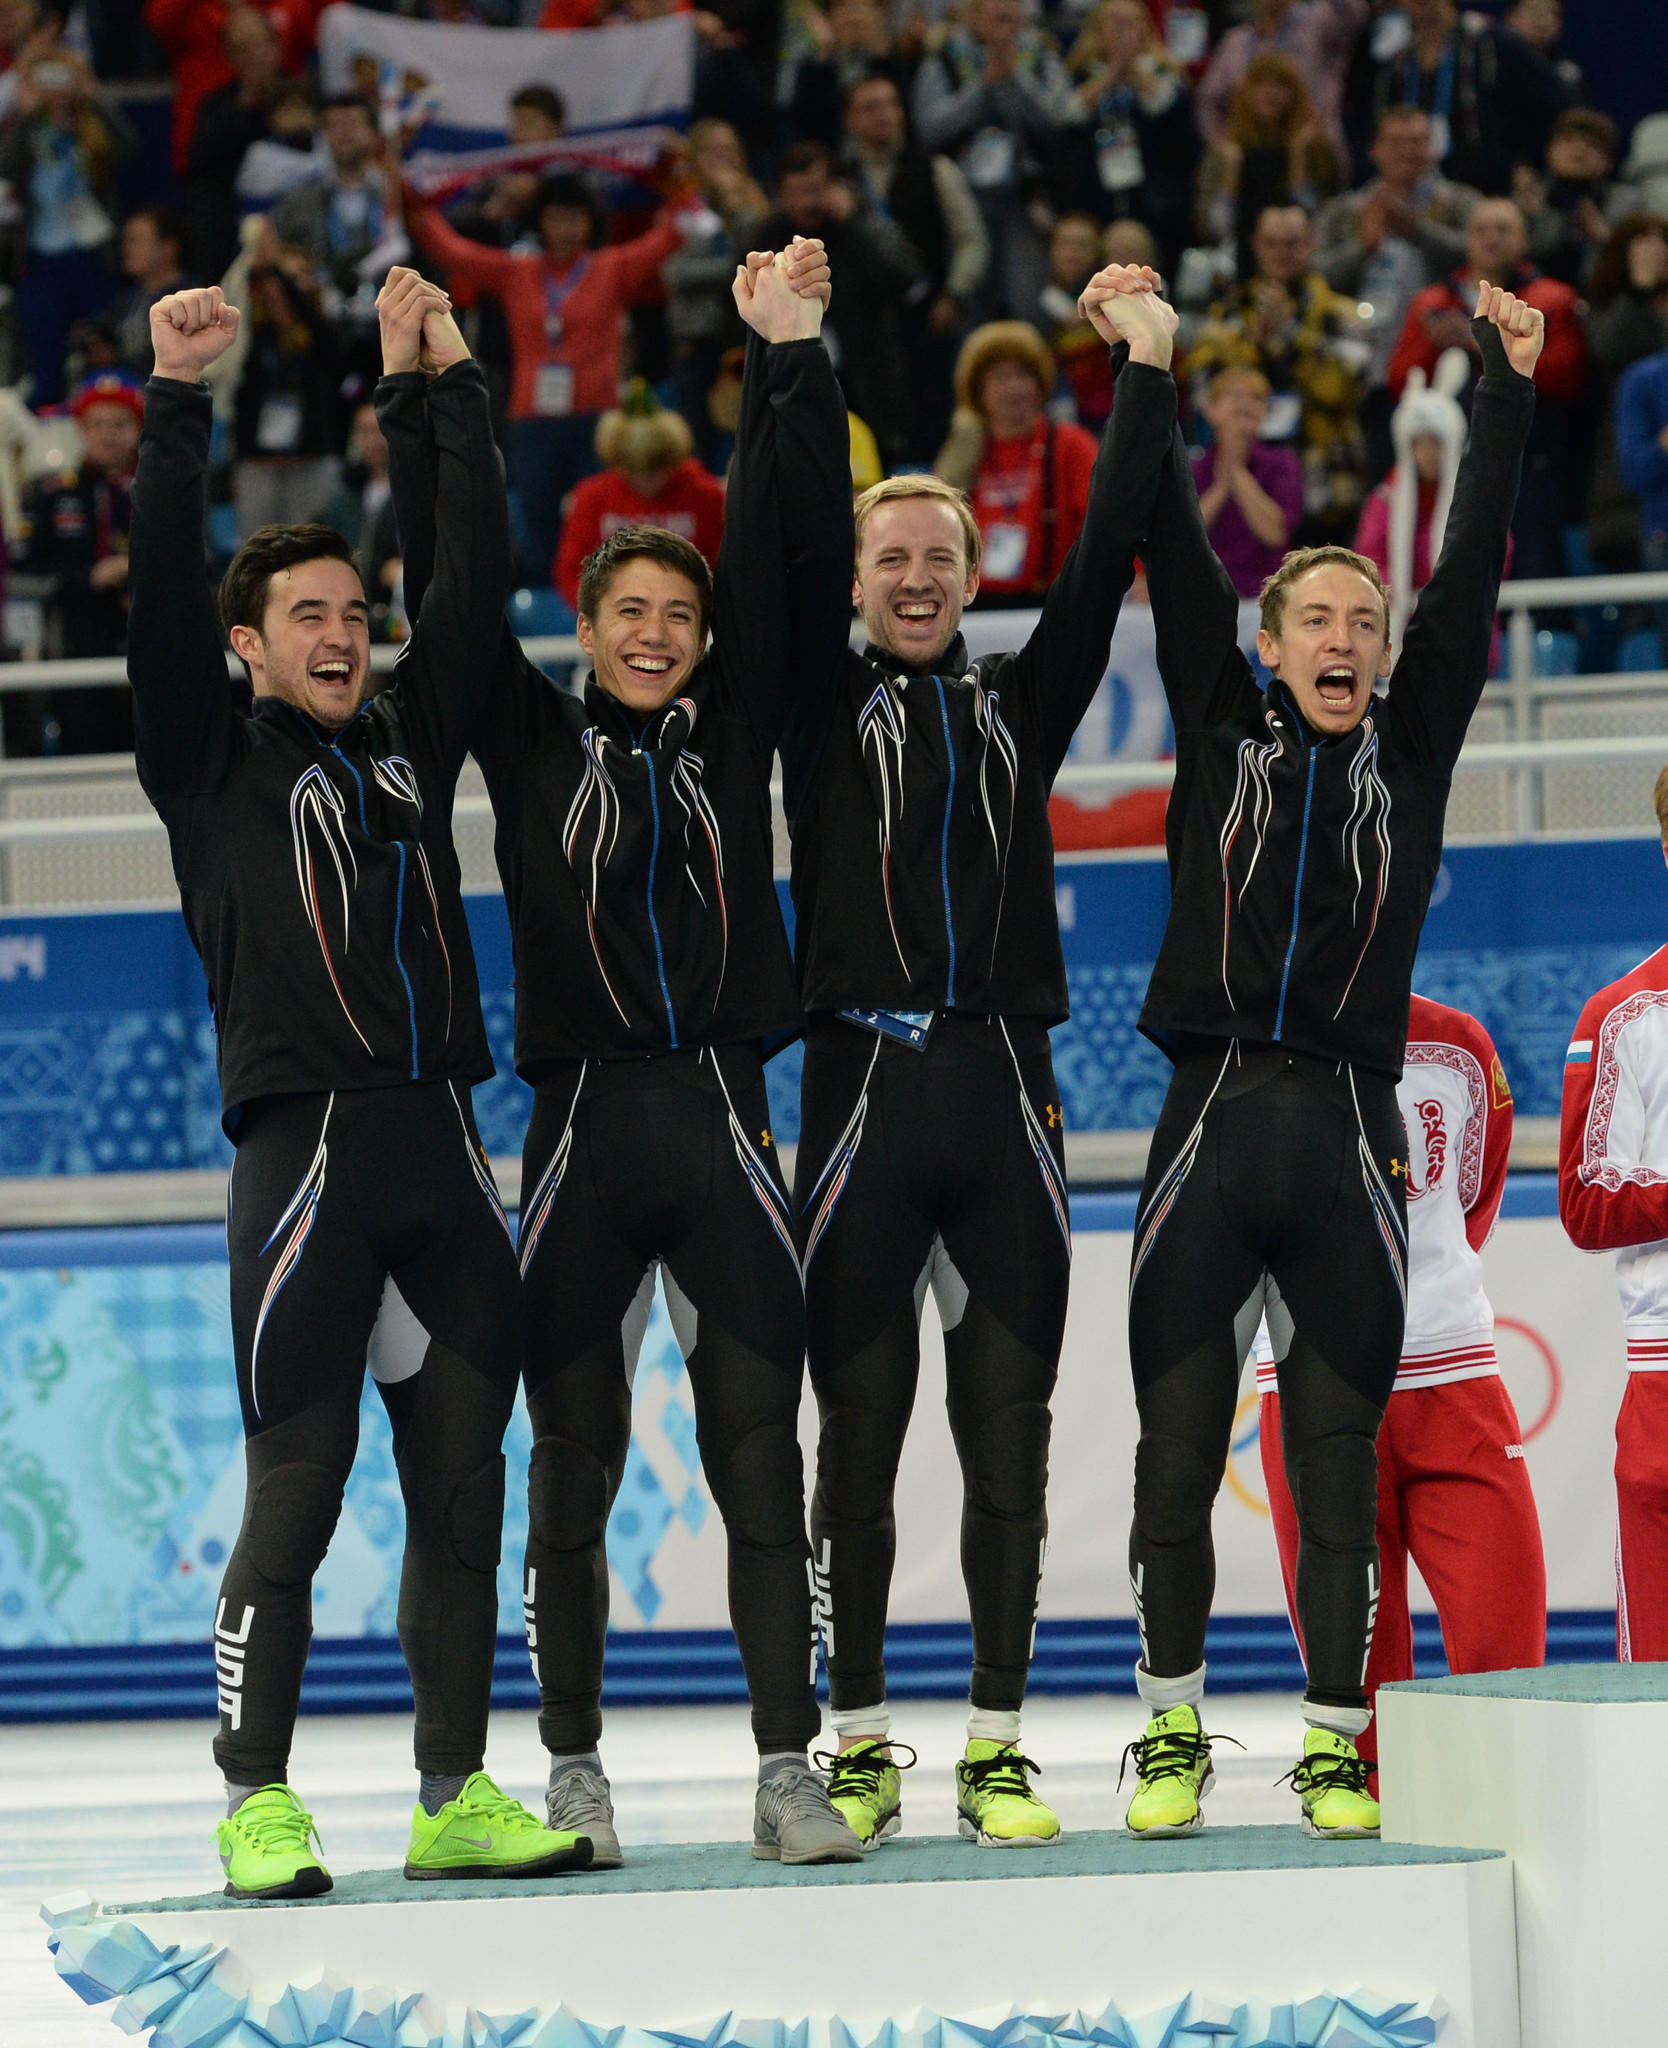 Team USA celebrates their silver medal in short track speed skating men's 5000m relay in the Sochi 2014 Olympic Winter Games at Iceberg Skating Palace. They are from left, Eduardo Alvarez, J.R. Celski, Chris Creveling, and Jordan Malone.